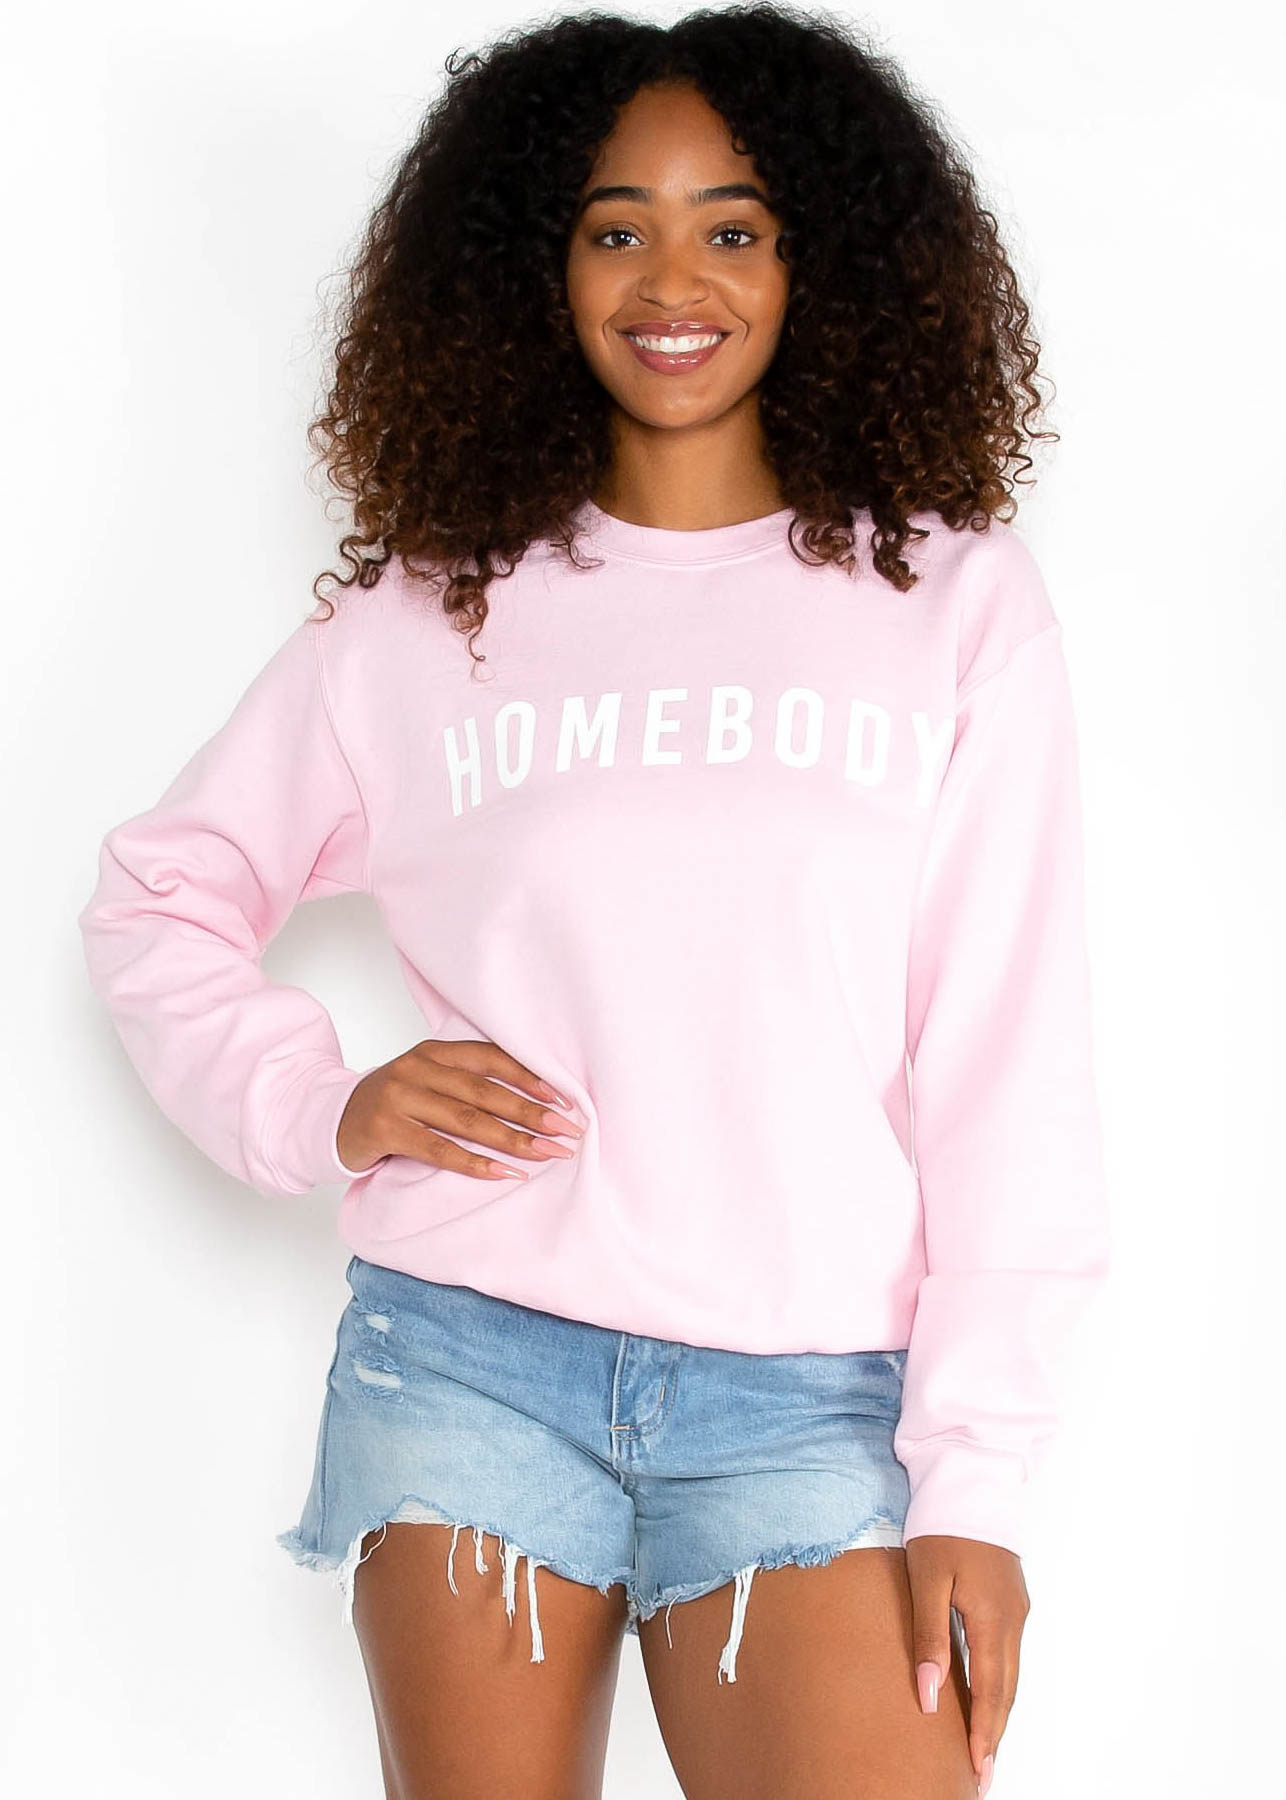 HOMEBODY SWEATSHIRT - PINK